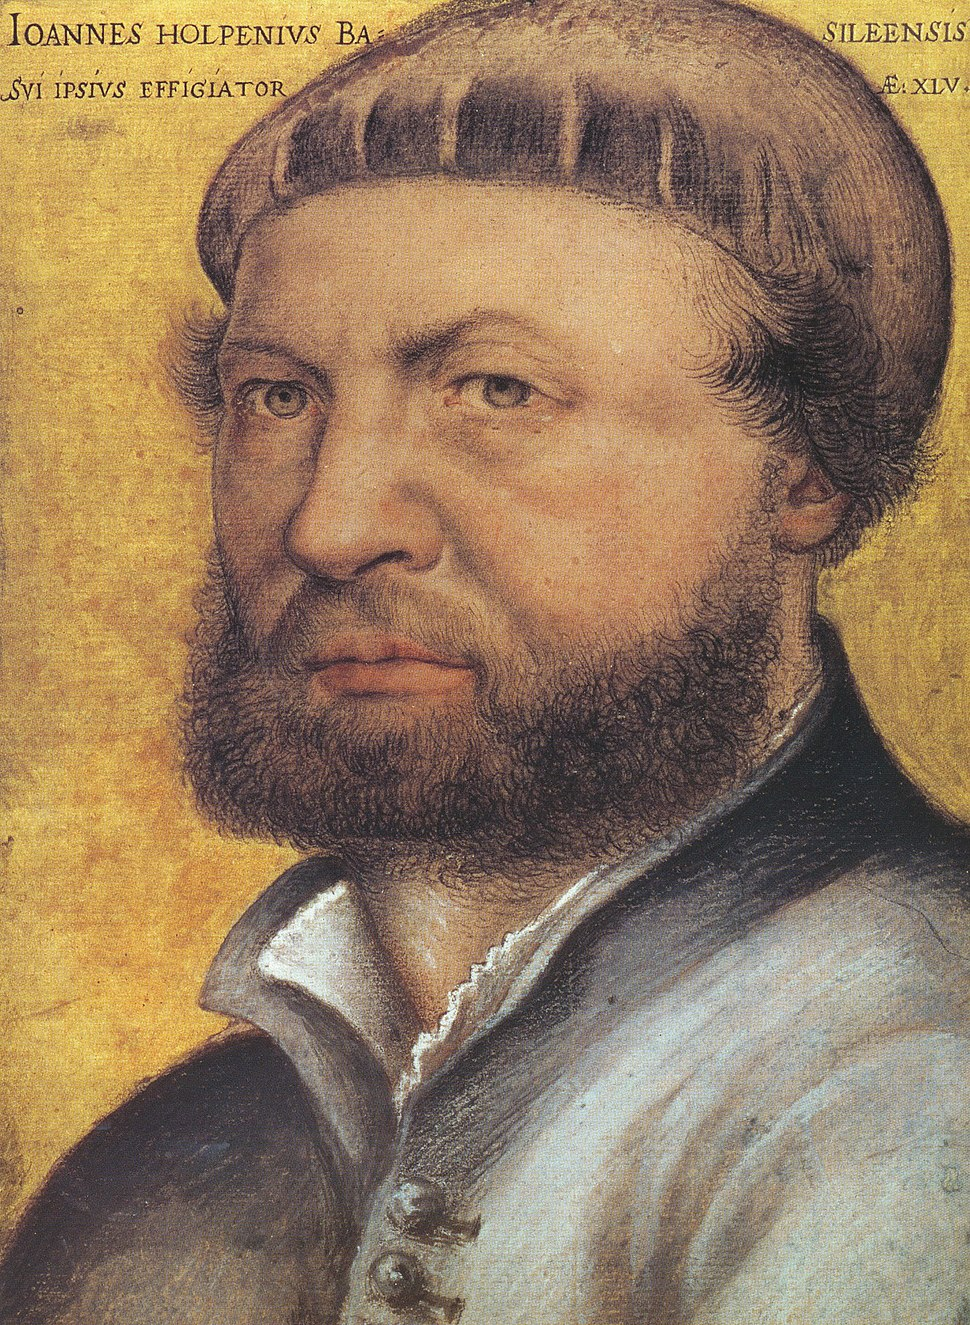 Hans Holbein the Younger, self-portrait